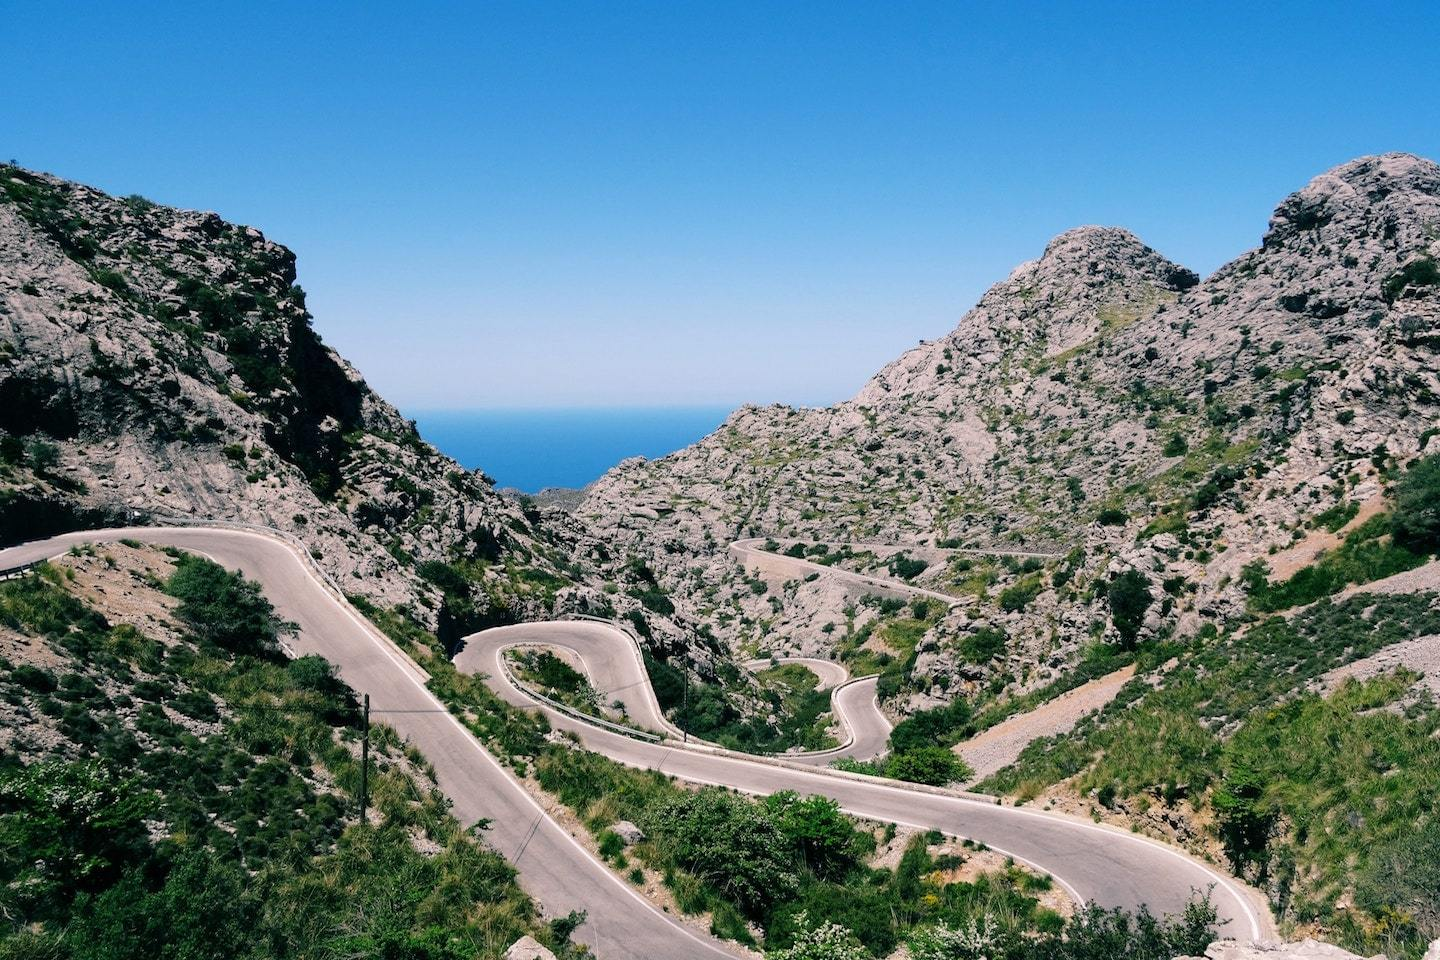 winding road going through mountains in spain